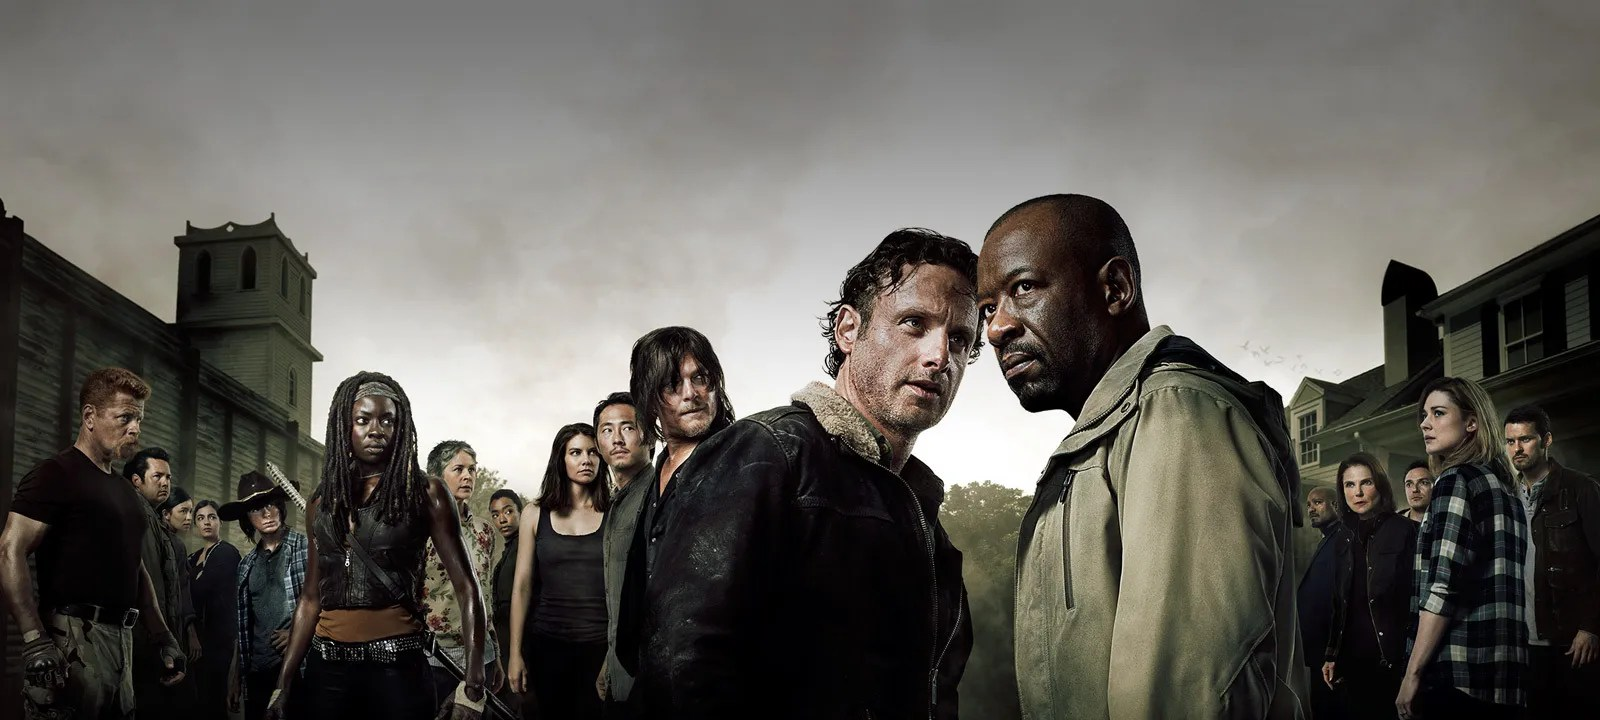 photo the-walking-dead-season-6-cci-key-art-1600x720_zpstyp6l9vi.jpg